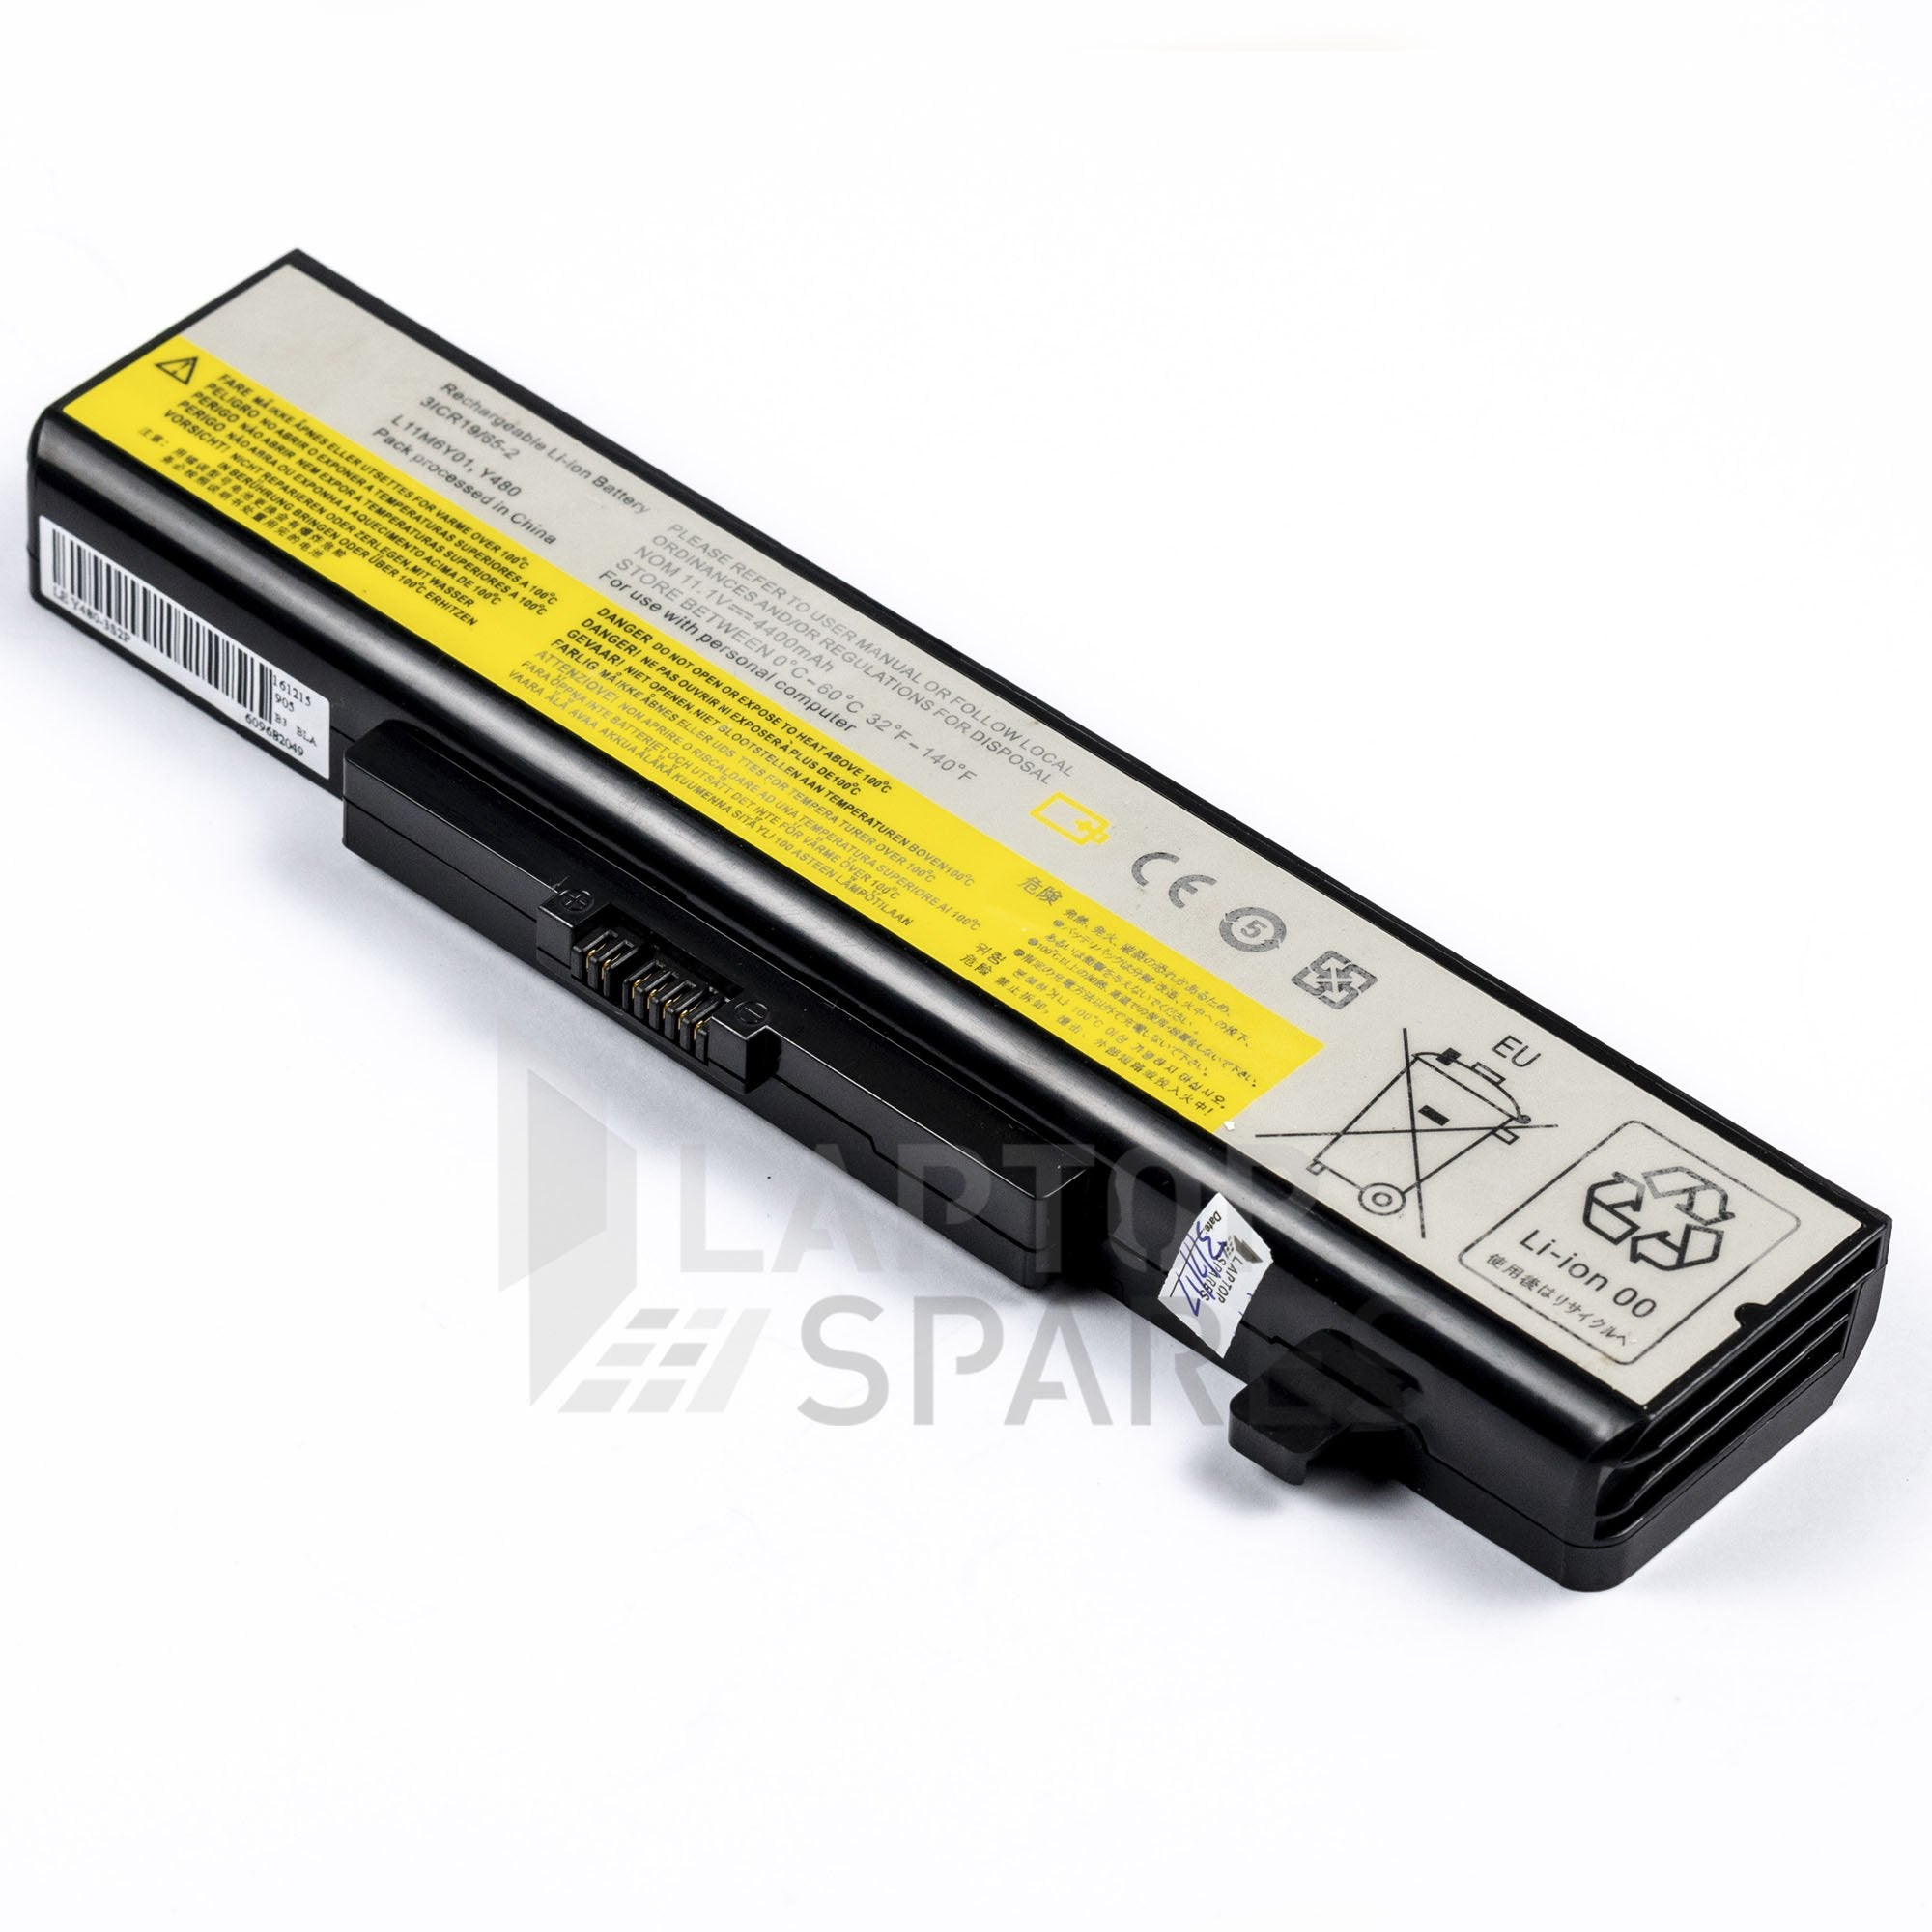 Lenovo IdeaPad B480 B485  4400mAh 6 Cell Battery